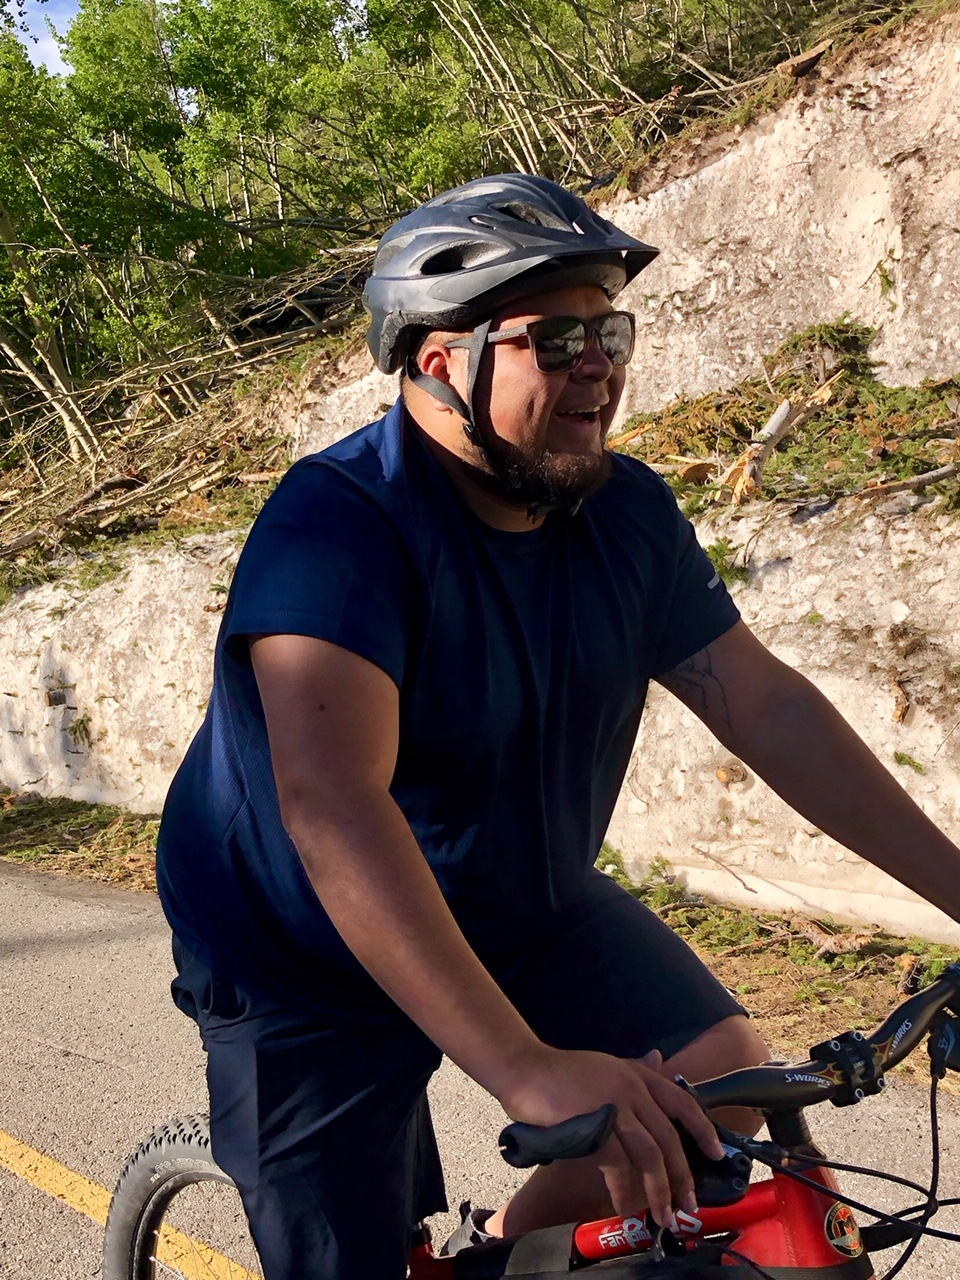 LOCAL DREAMER TO RIDE THROUGH VAIL VALLEY TO RAISE DACA AWARENESS - ARTICLE IN THE VAIL DAILY